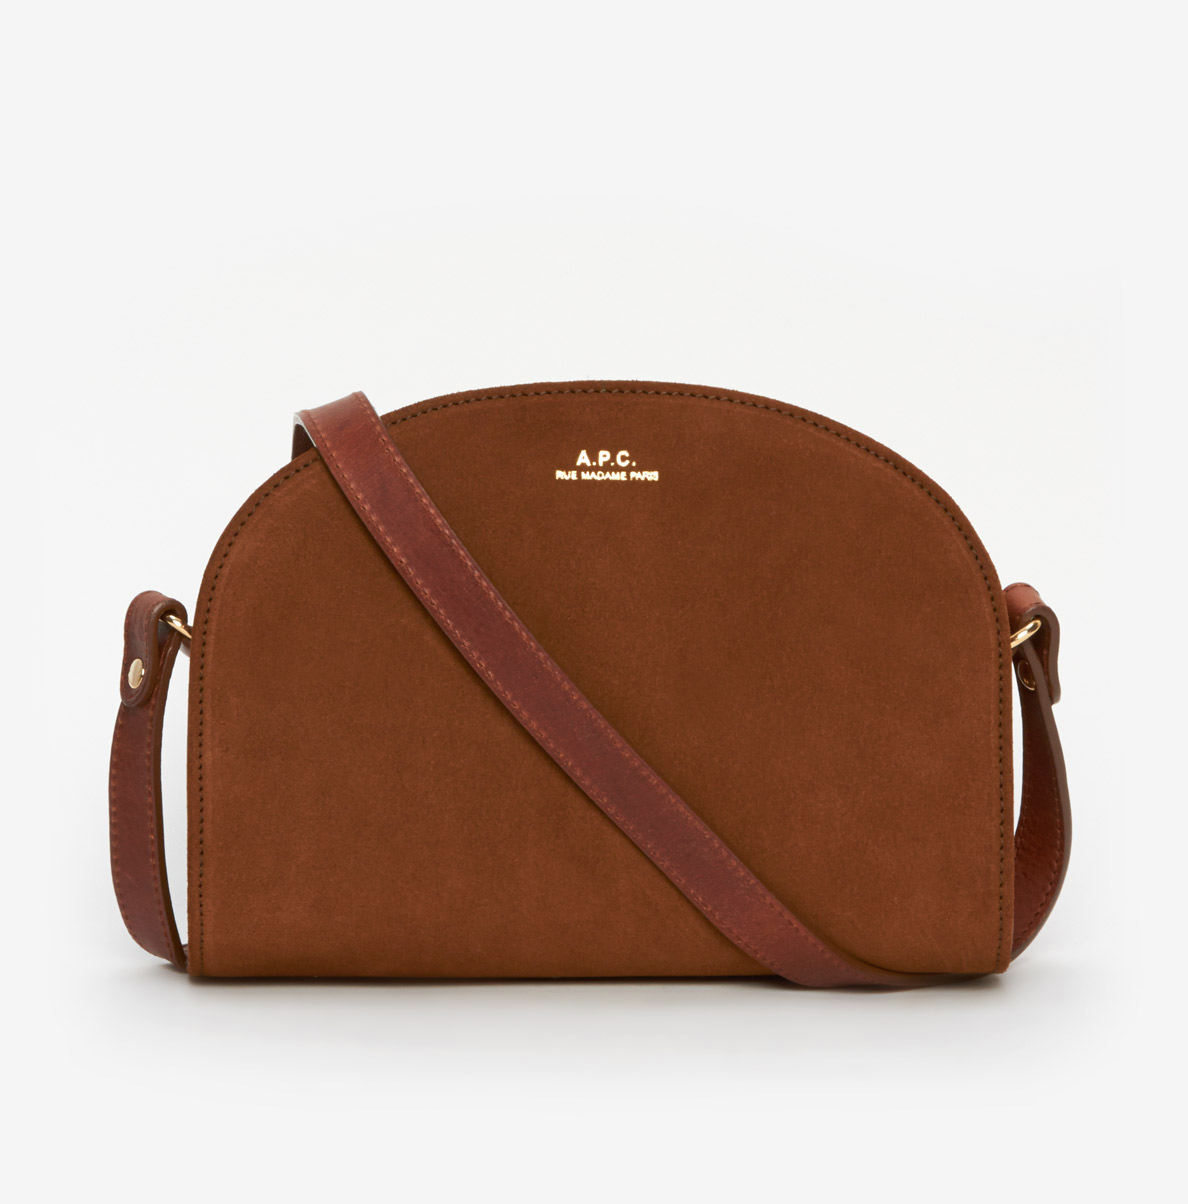 21 verified Michael Kors coupons and promo codes as of Dec 2. Popular now: Shop Up to 60% Off Michael Kors Sale Handbags. Trust shopteddybears9.ml for Womens Clothing savings.